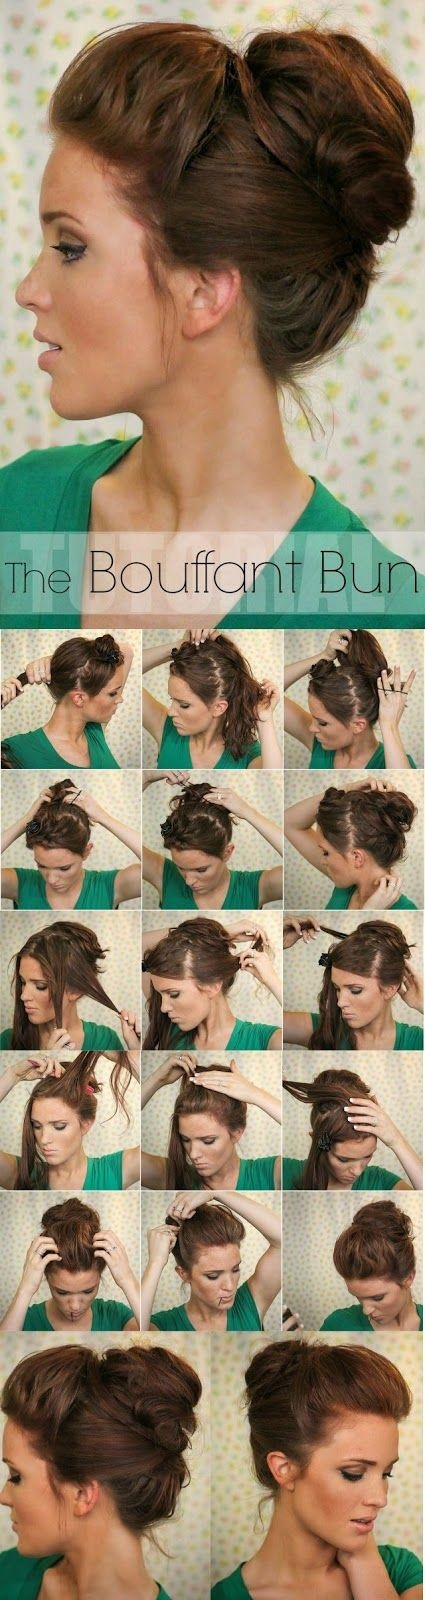 XV hairstyle4